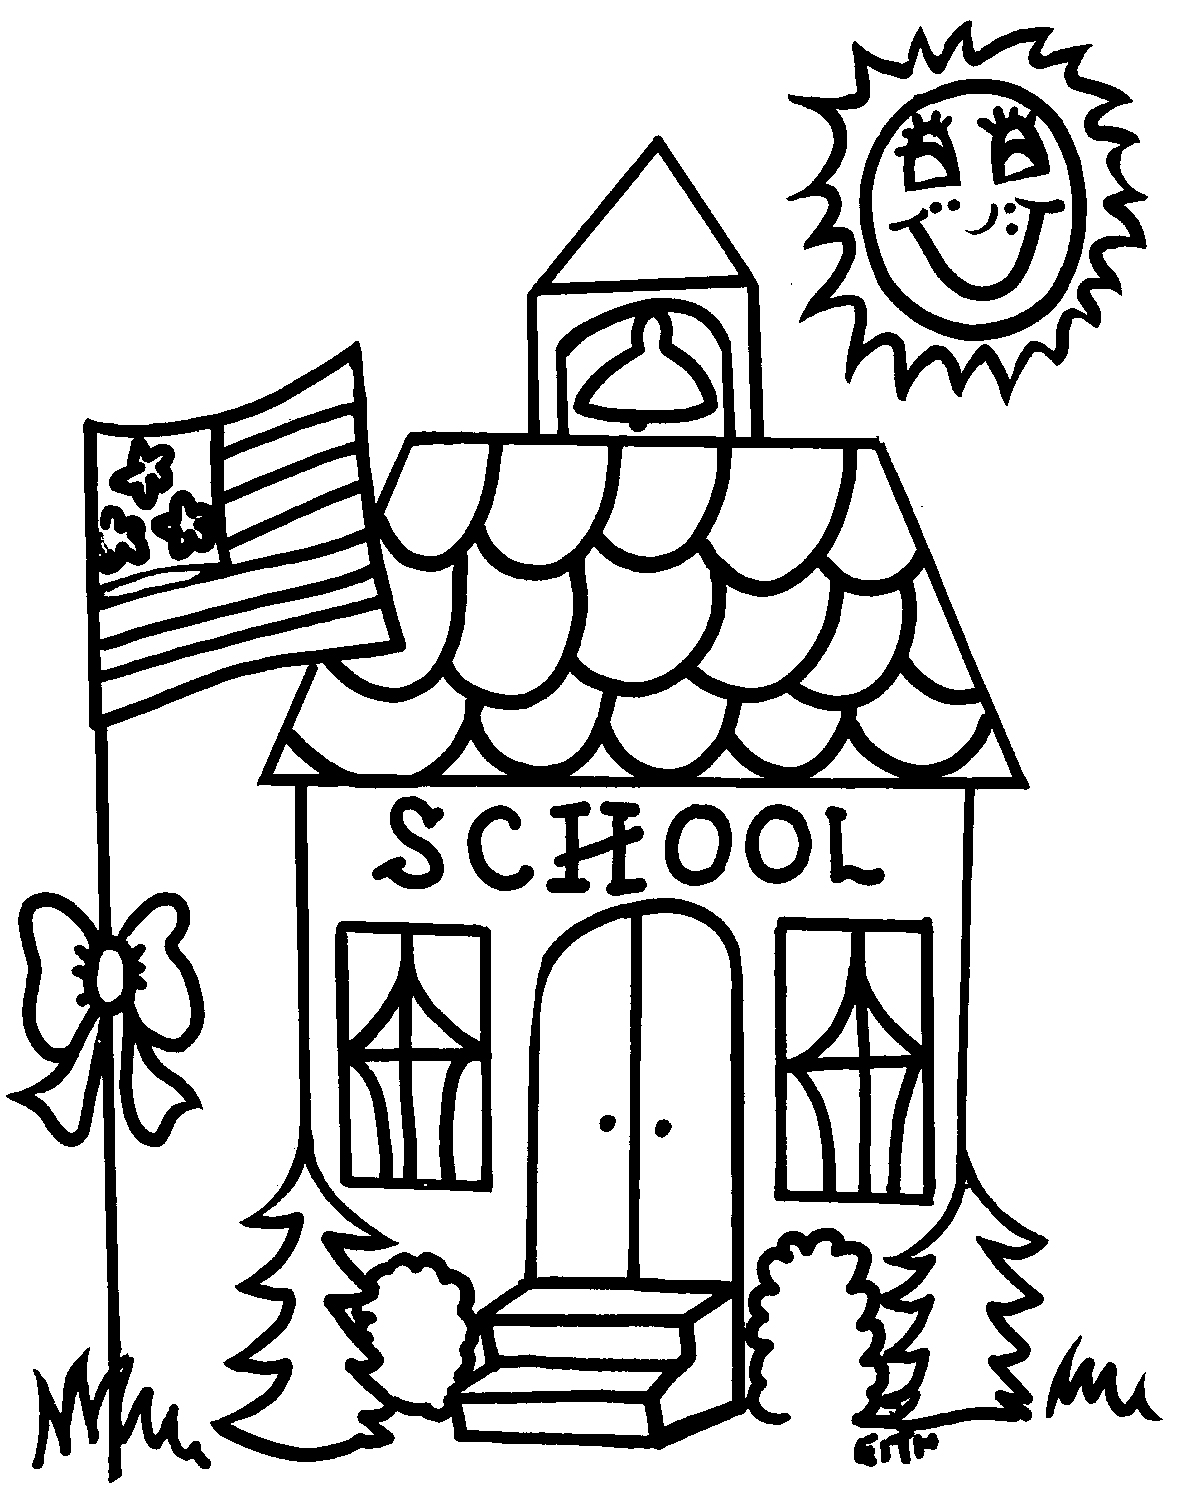 Free School House Outline, Download Free Clip Art, Free